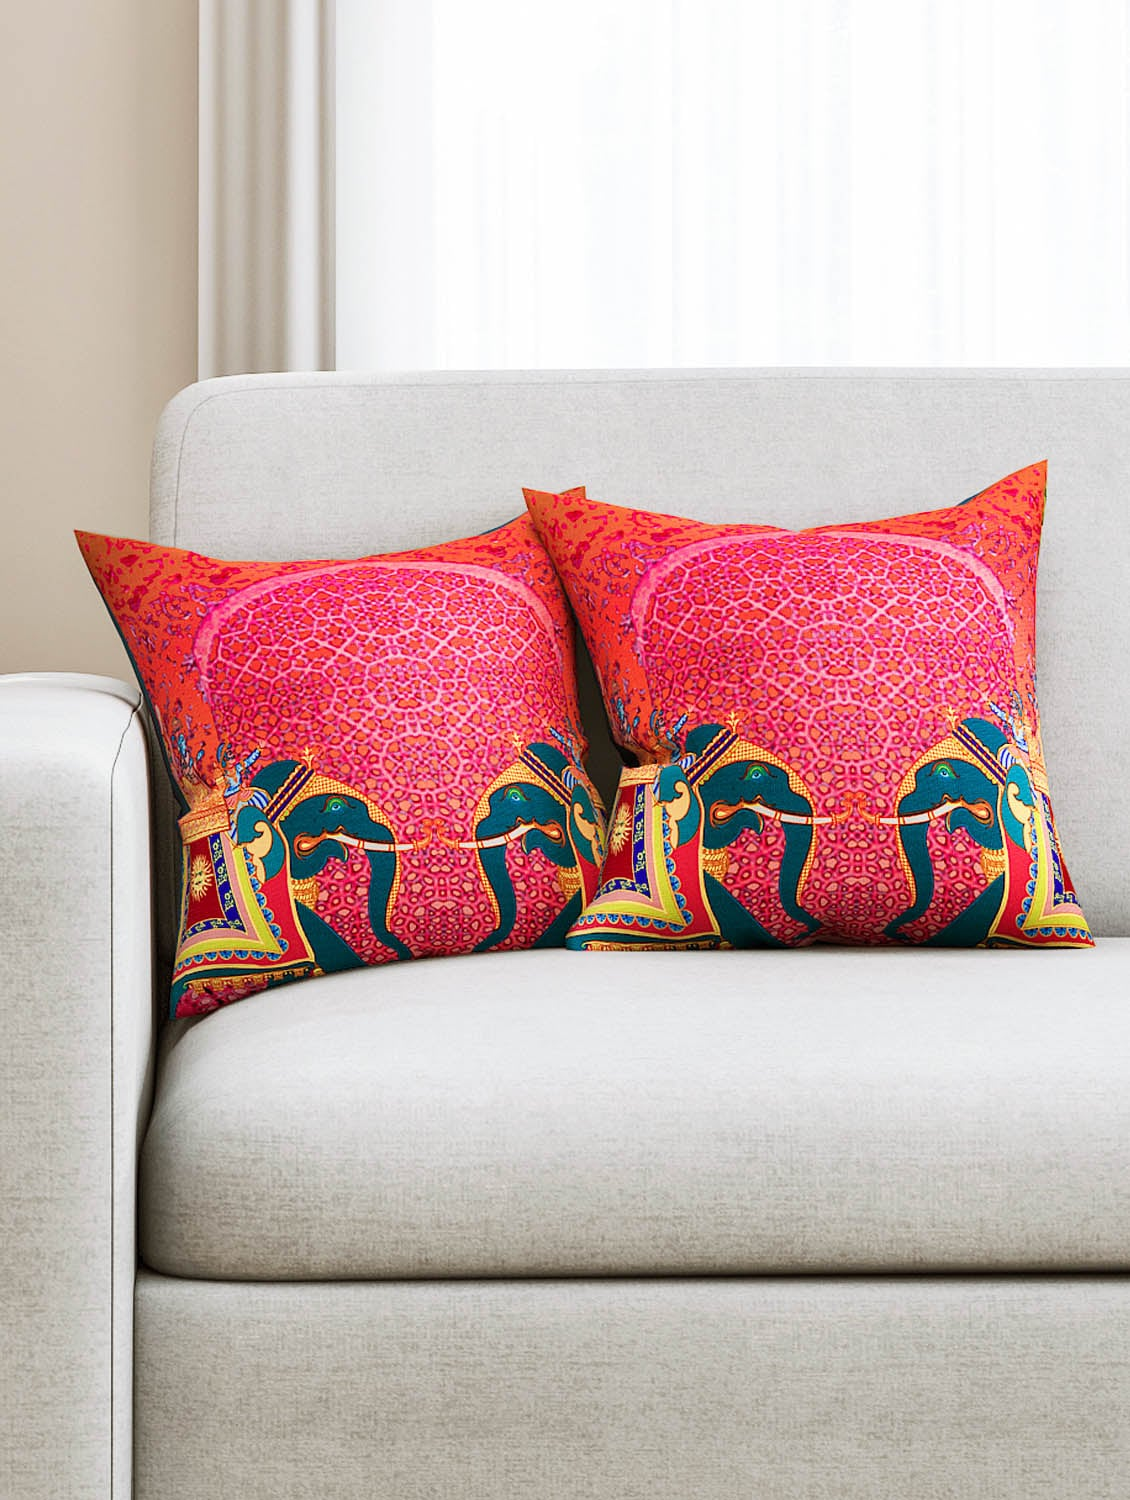 Sej Abstract Orange Hd Digital Premium 16 By Inch Cushion Cover Set Of 2 Sbccdp0042p For Uni From Nisha Gupta 664 At 17 Off